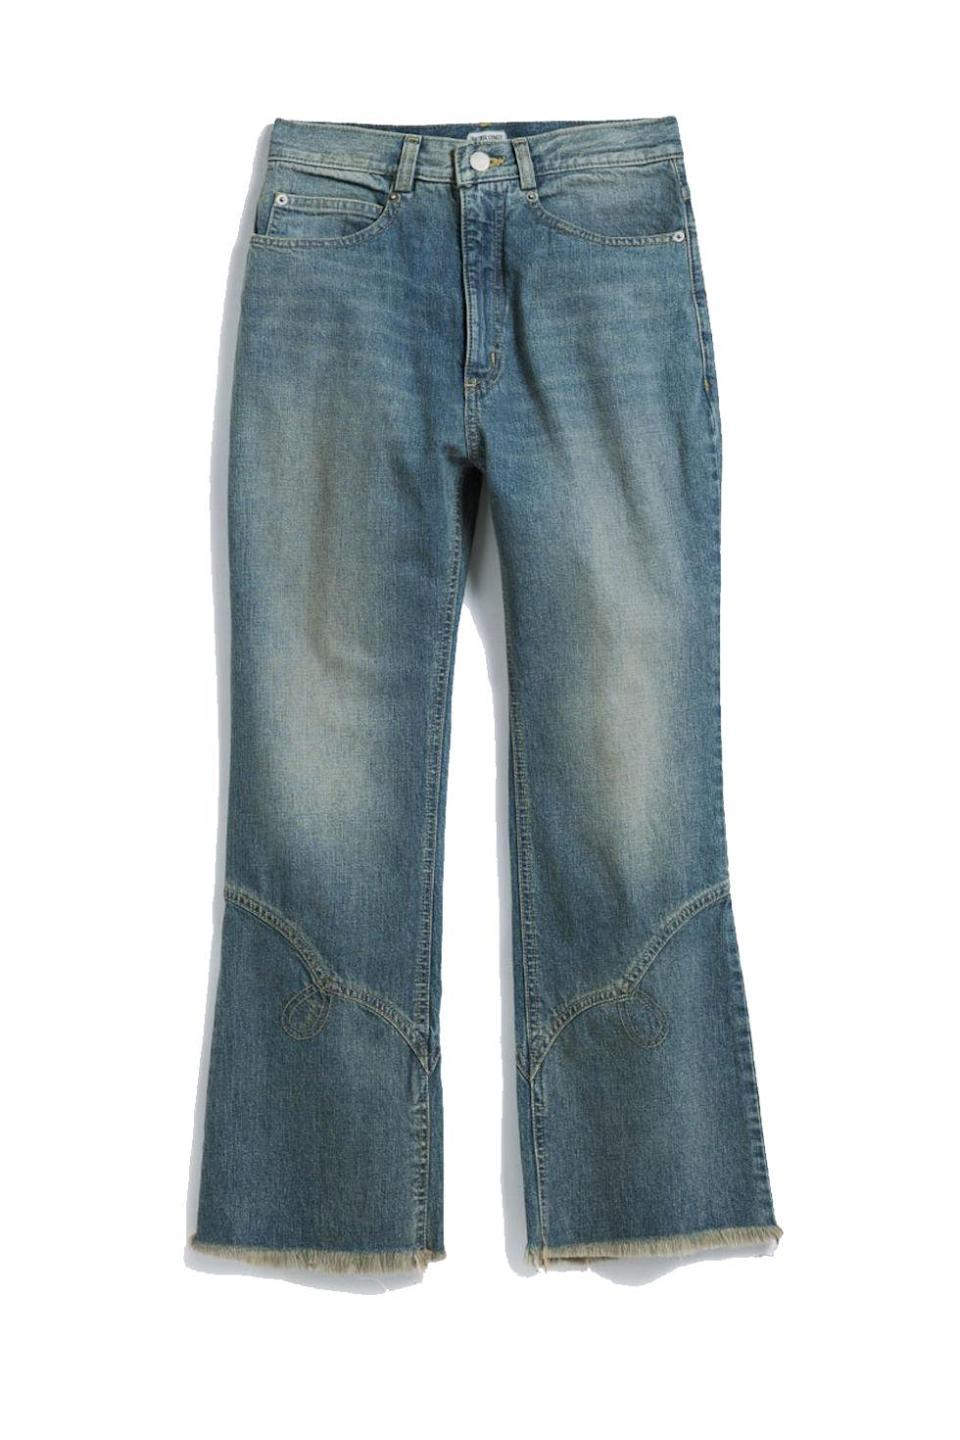 """<p>Western styling for every rodeo you're invited to that is most definitely not your first. </p><p><strong>BUY IT:</strong> Rachel Comey, $94; <a href=""""http://needsupply.com/womens/clothing/denim/humbolt-pant.html"""" rel=""""nofollow noopener"""" target=""""_blank"""" data-ylk=""""slk:needsupply.com"""" class=""""link rapid-noclick-resp"""">needsupply.com</a>.</p>"""